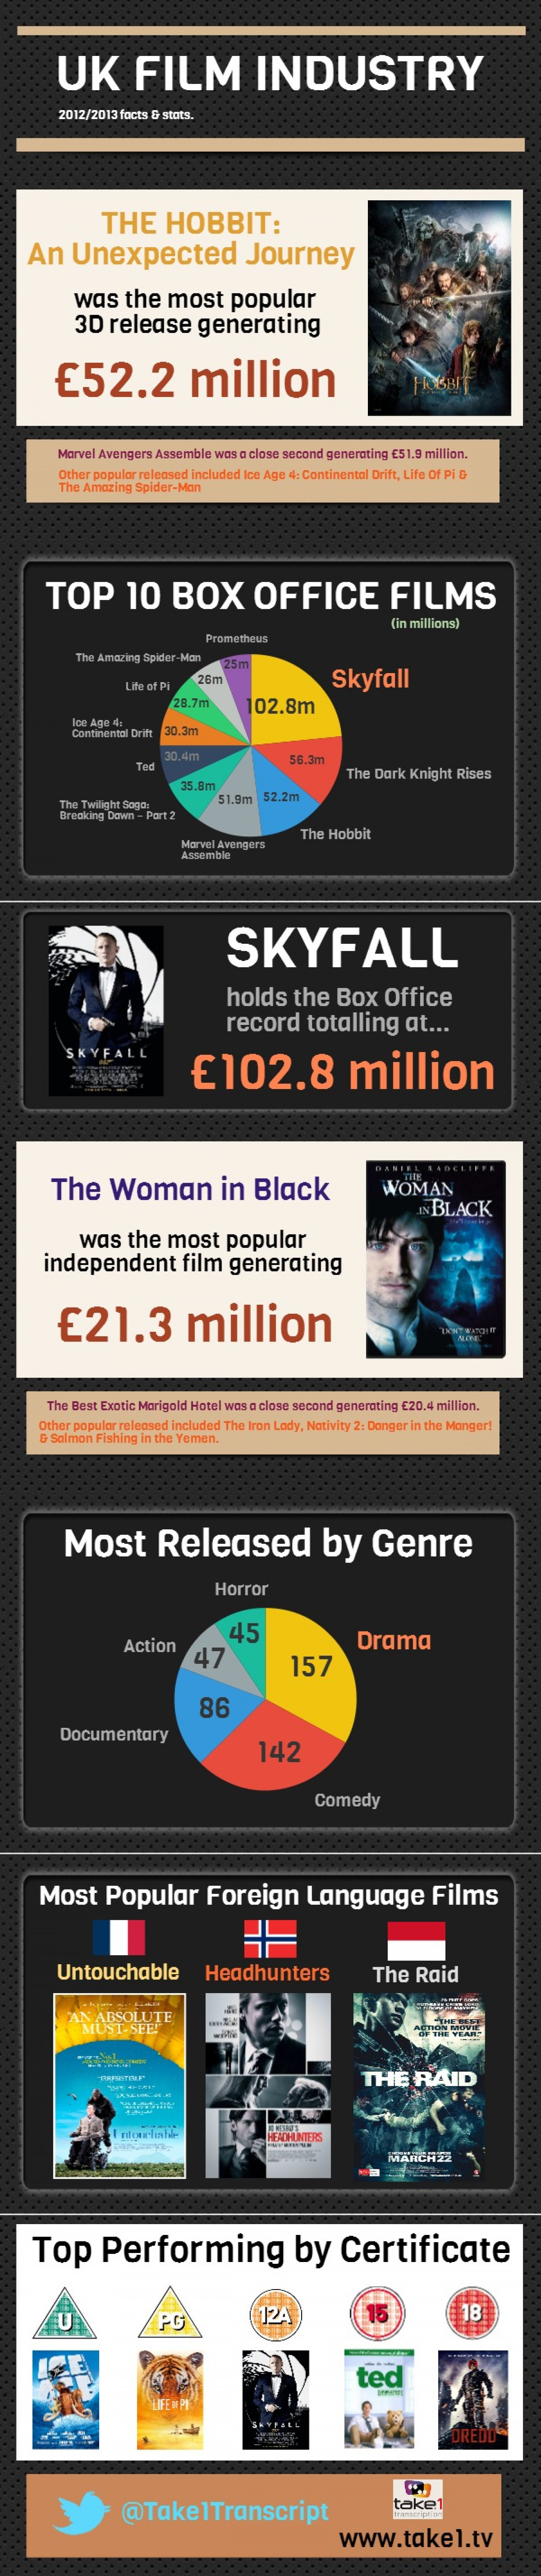 Uk Film Industry Infographic